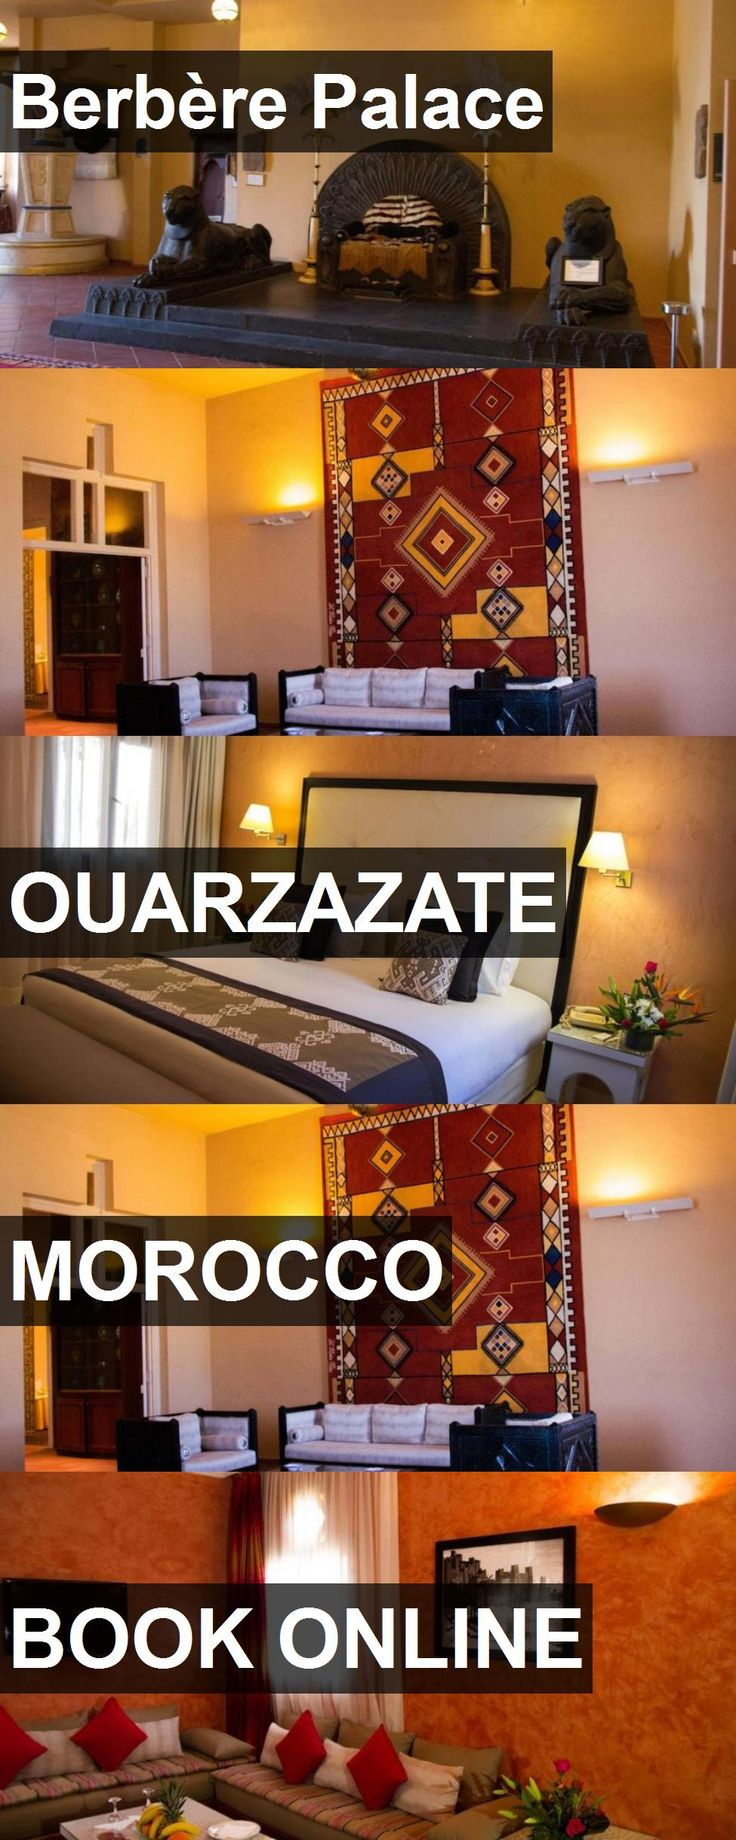 Hotel Berbère Palace in Ouarzazate, Morocco. For more information, photos, reviews and best prices please follow the link. #Morocco #Ouarzazate #travel #vacation #hotel